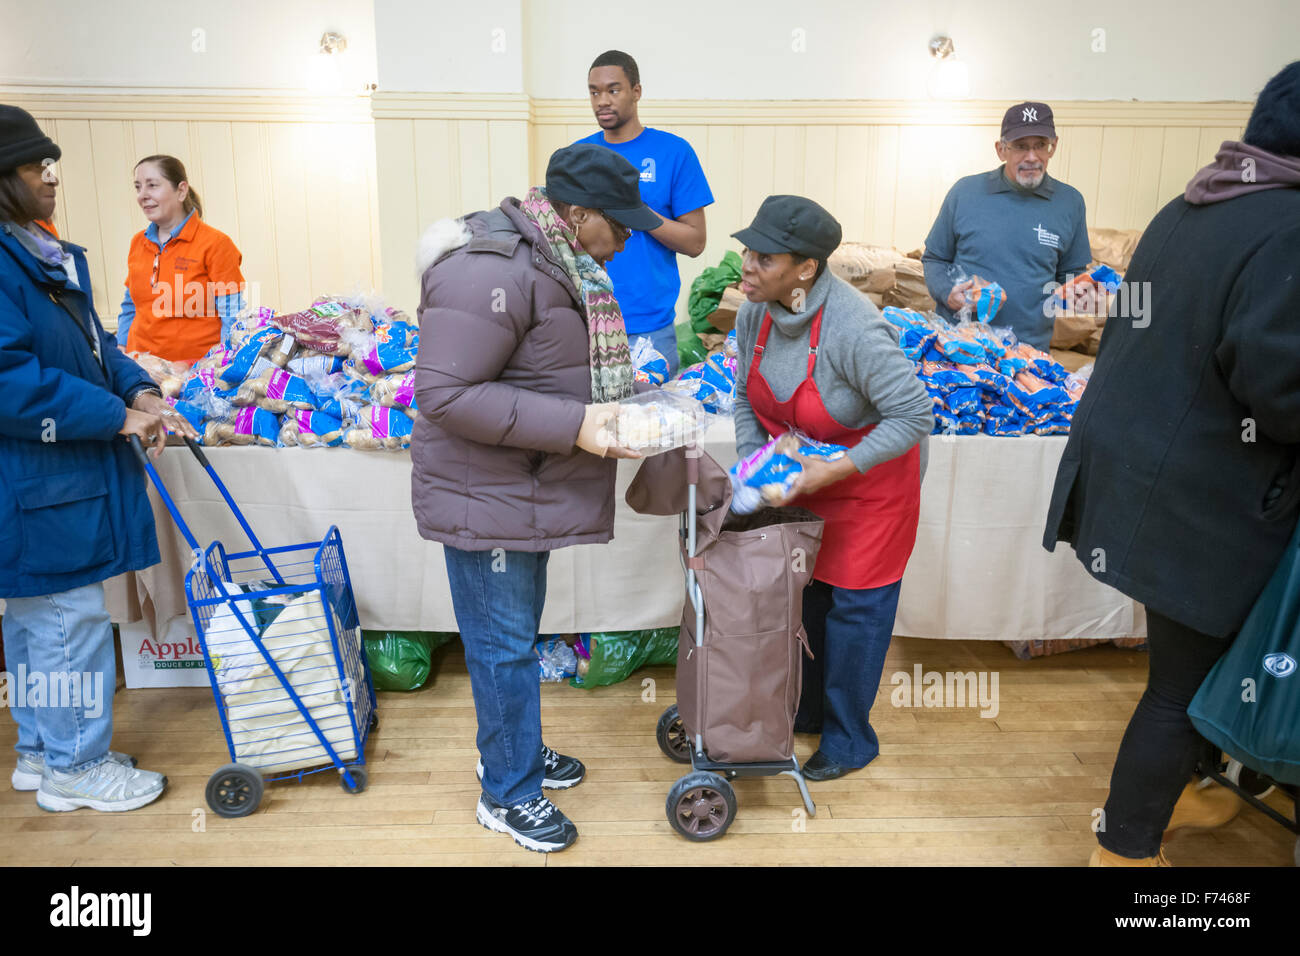 """Volunteers distribute turkeys, stuffing and all the other """"fixin's"""" for a Thanksgiving dinner to the neediest at Stock Photo"""